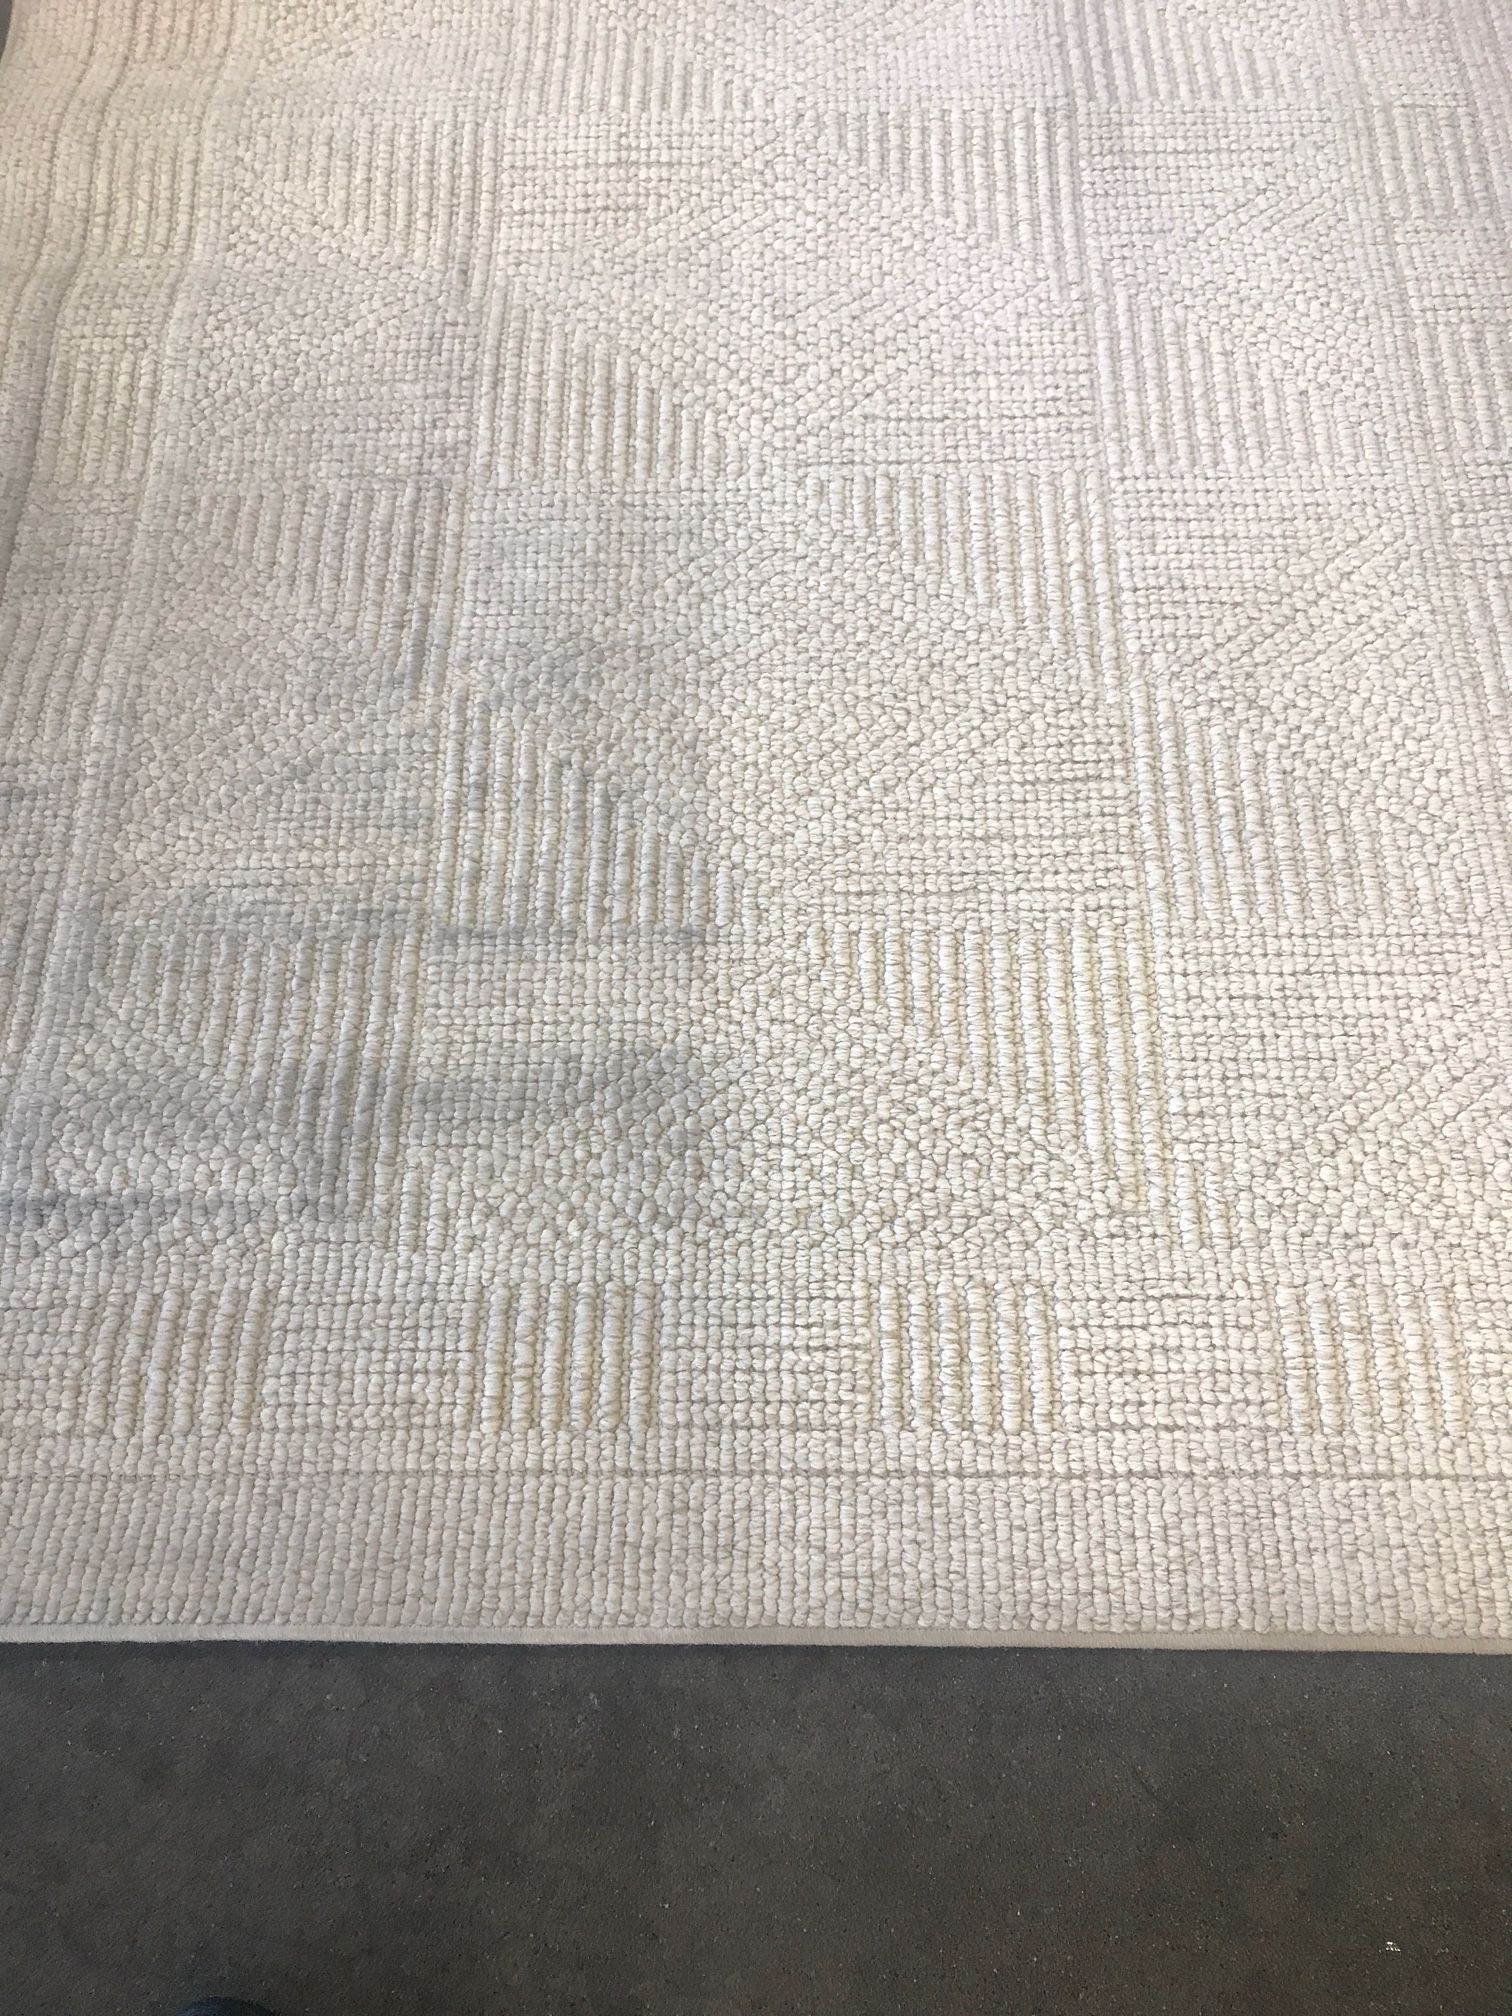 Before and after Hammond Knoll cleaned a carpet